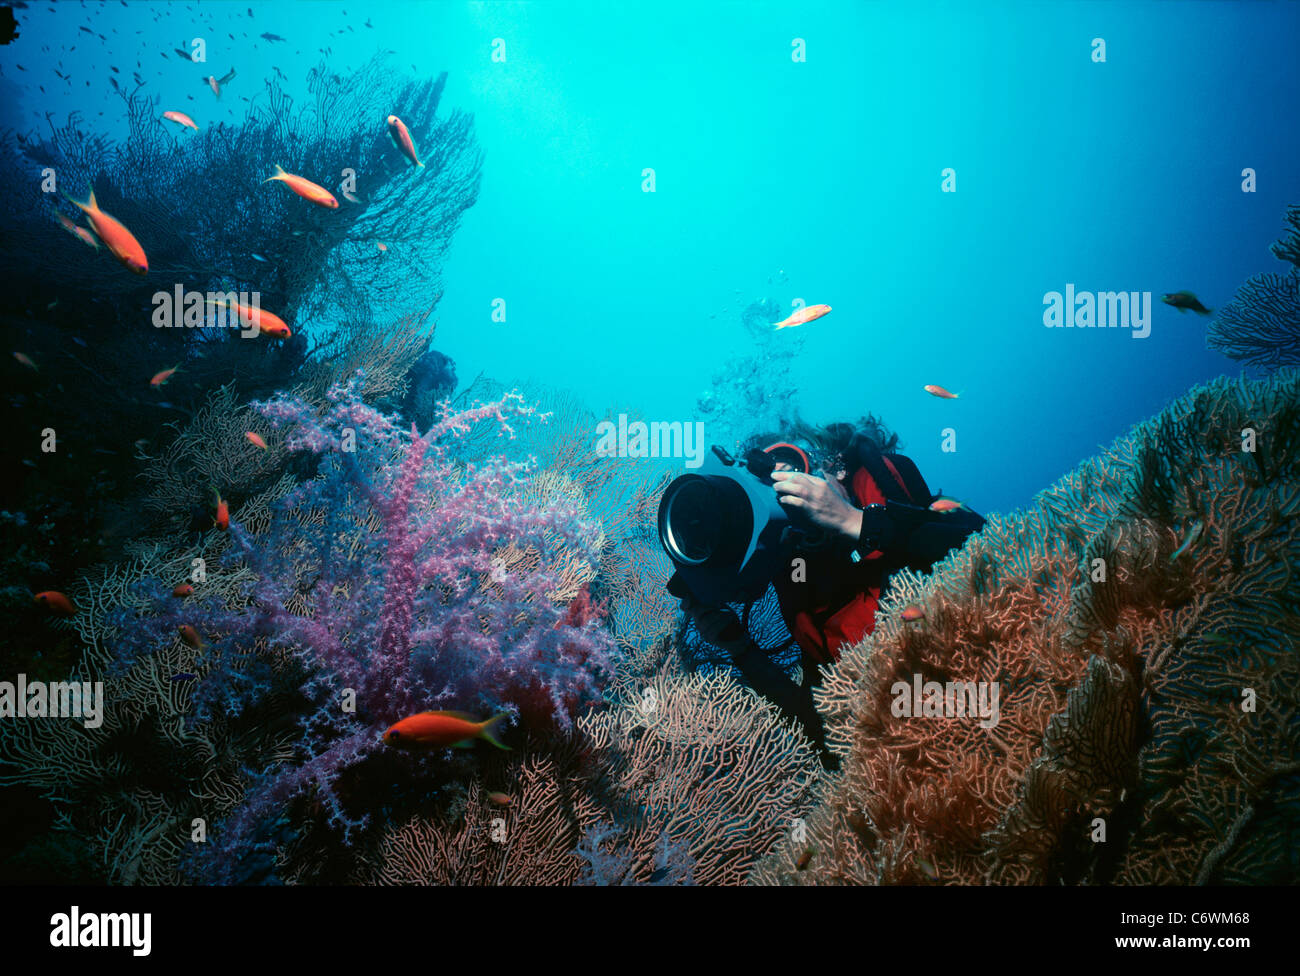 Diver photographs Scalefin Anthias (Anthias squamipinnis) schooling above coral reef wall. Egypt, Red Sea - Stock Image